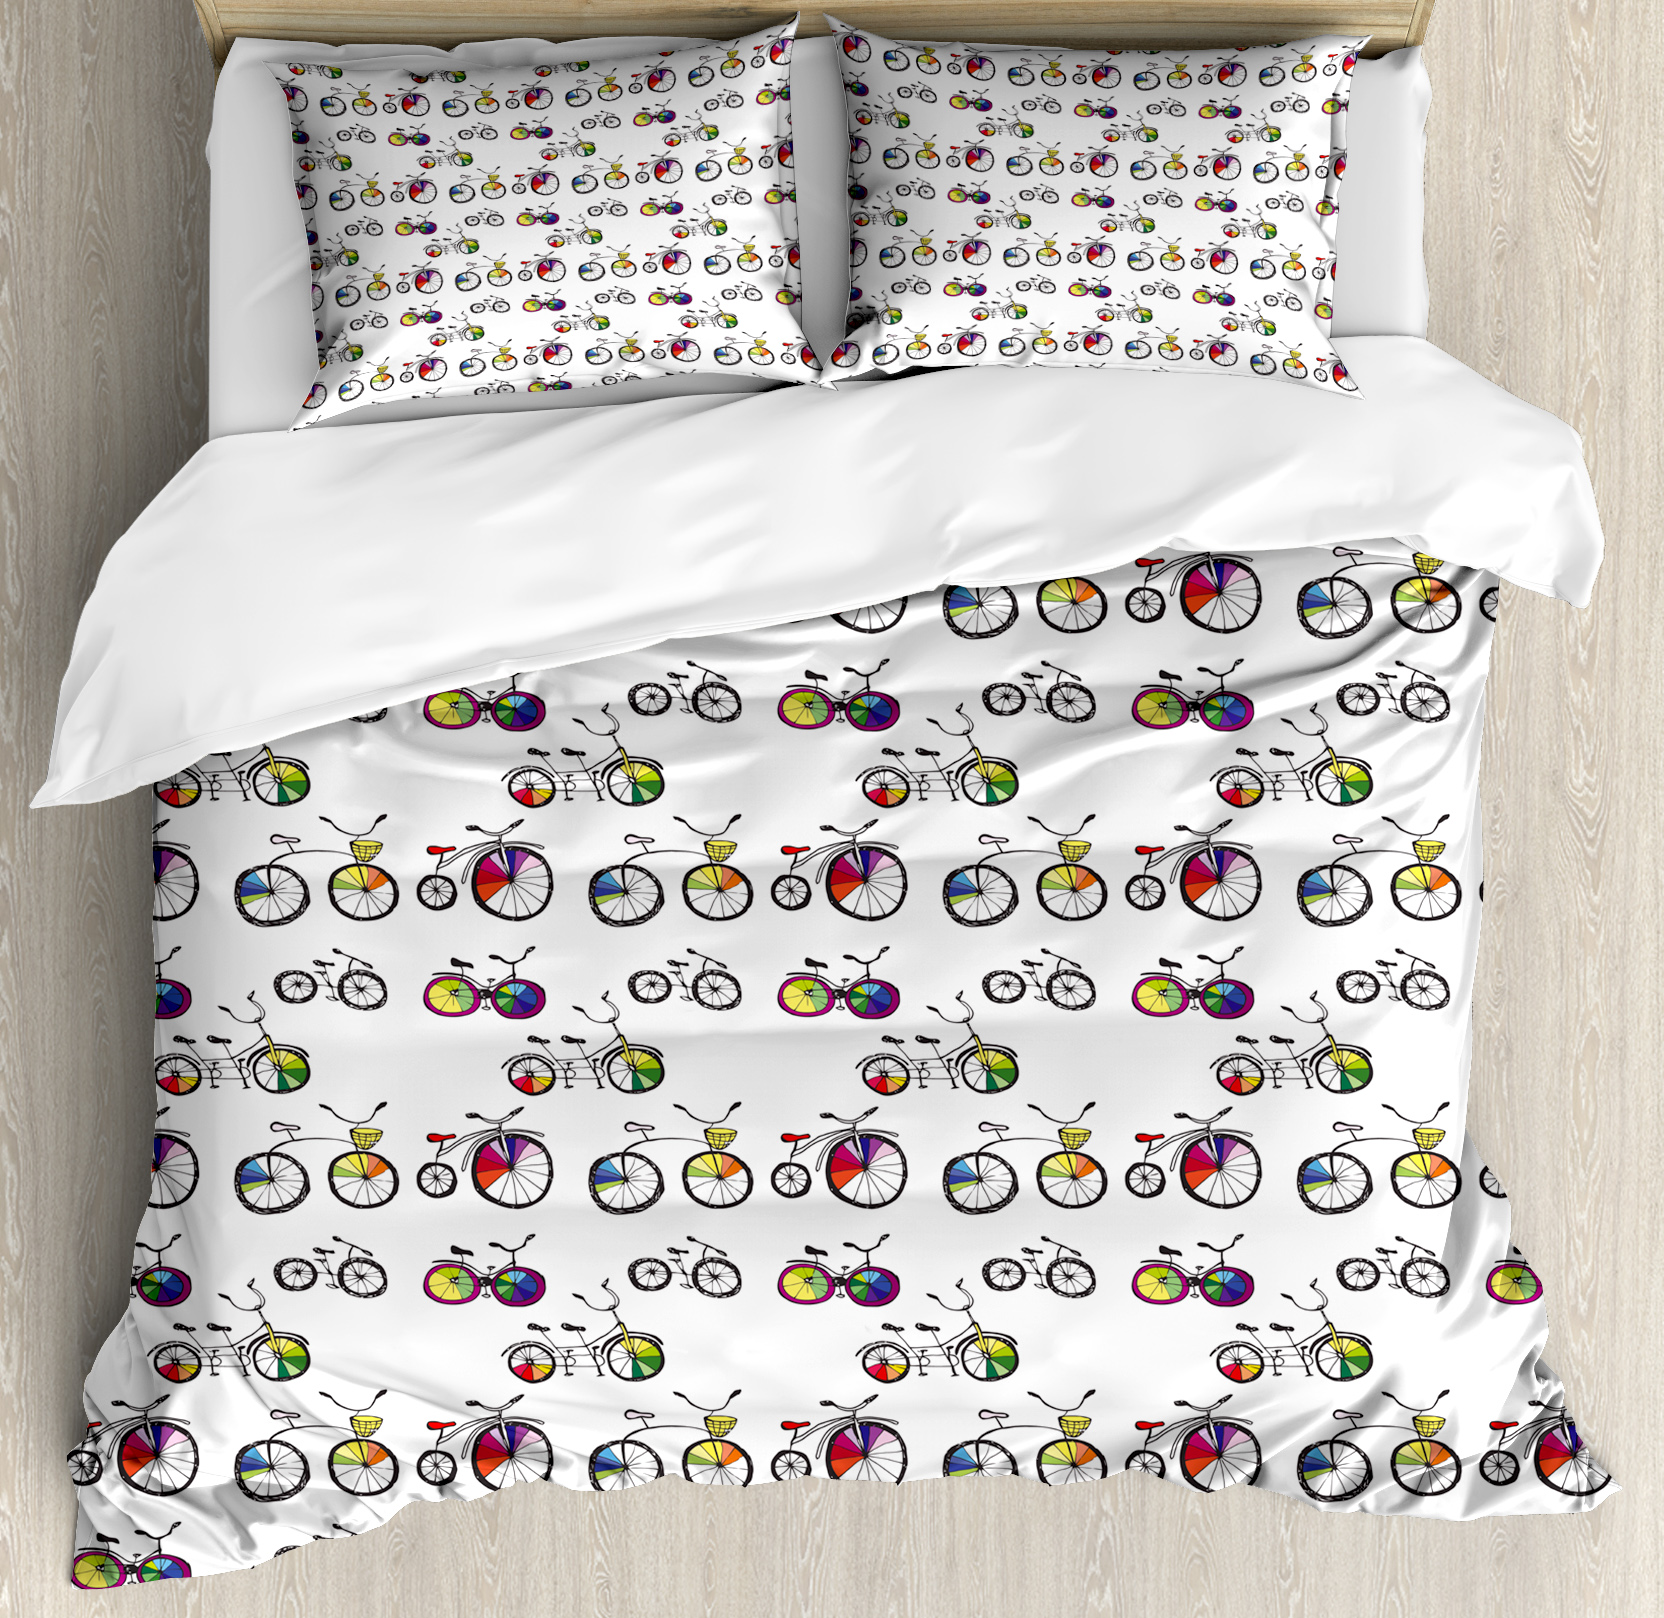 Bicycle King Size Duvet Cover Set, Hand Drawn Penny-Farthing Tandem and City Bikes with Colored Rims Cartoon Style, Decorative 3 Piece Bedding Set with 2 Pillow Shams, Multicolor, by Ambesonne